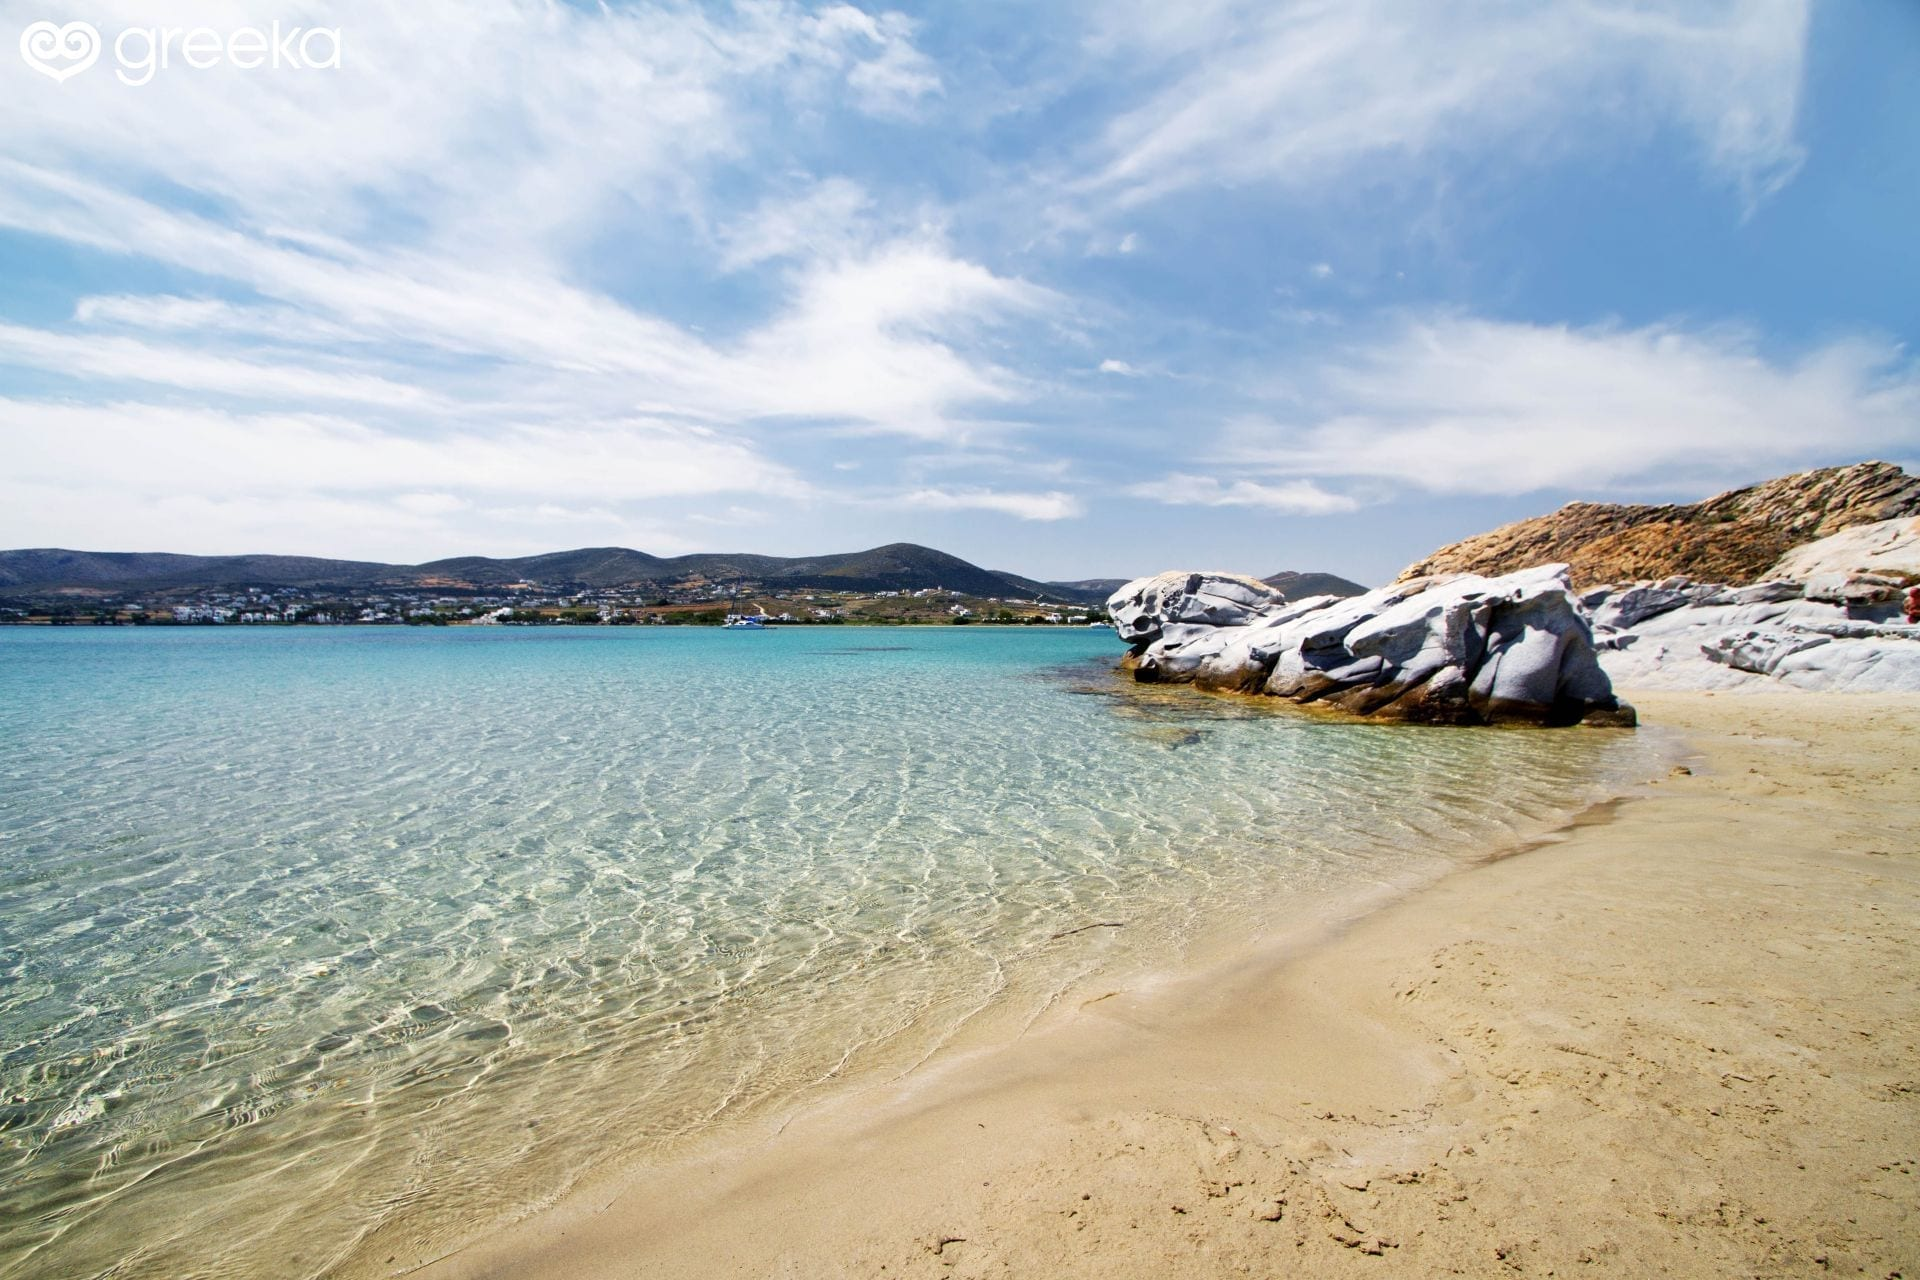 Kolymbithres Beach, Paros Island, Greece